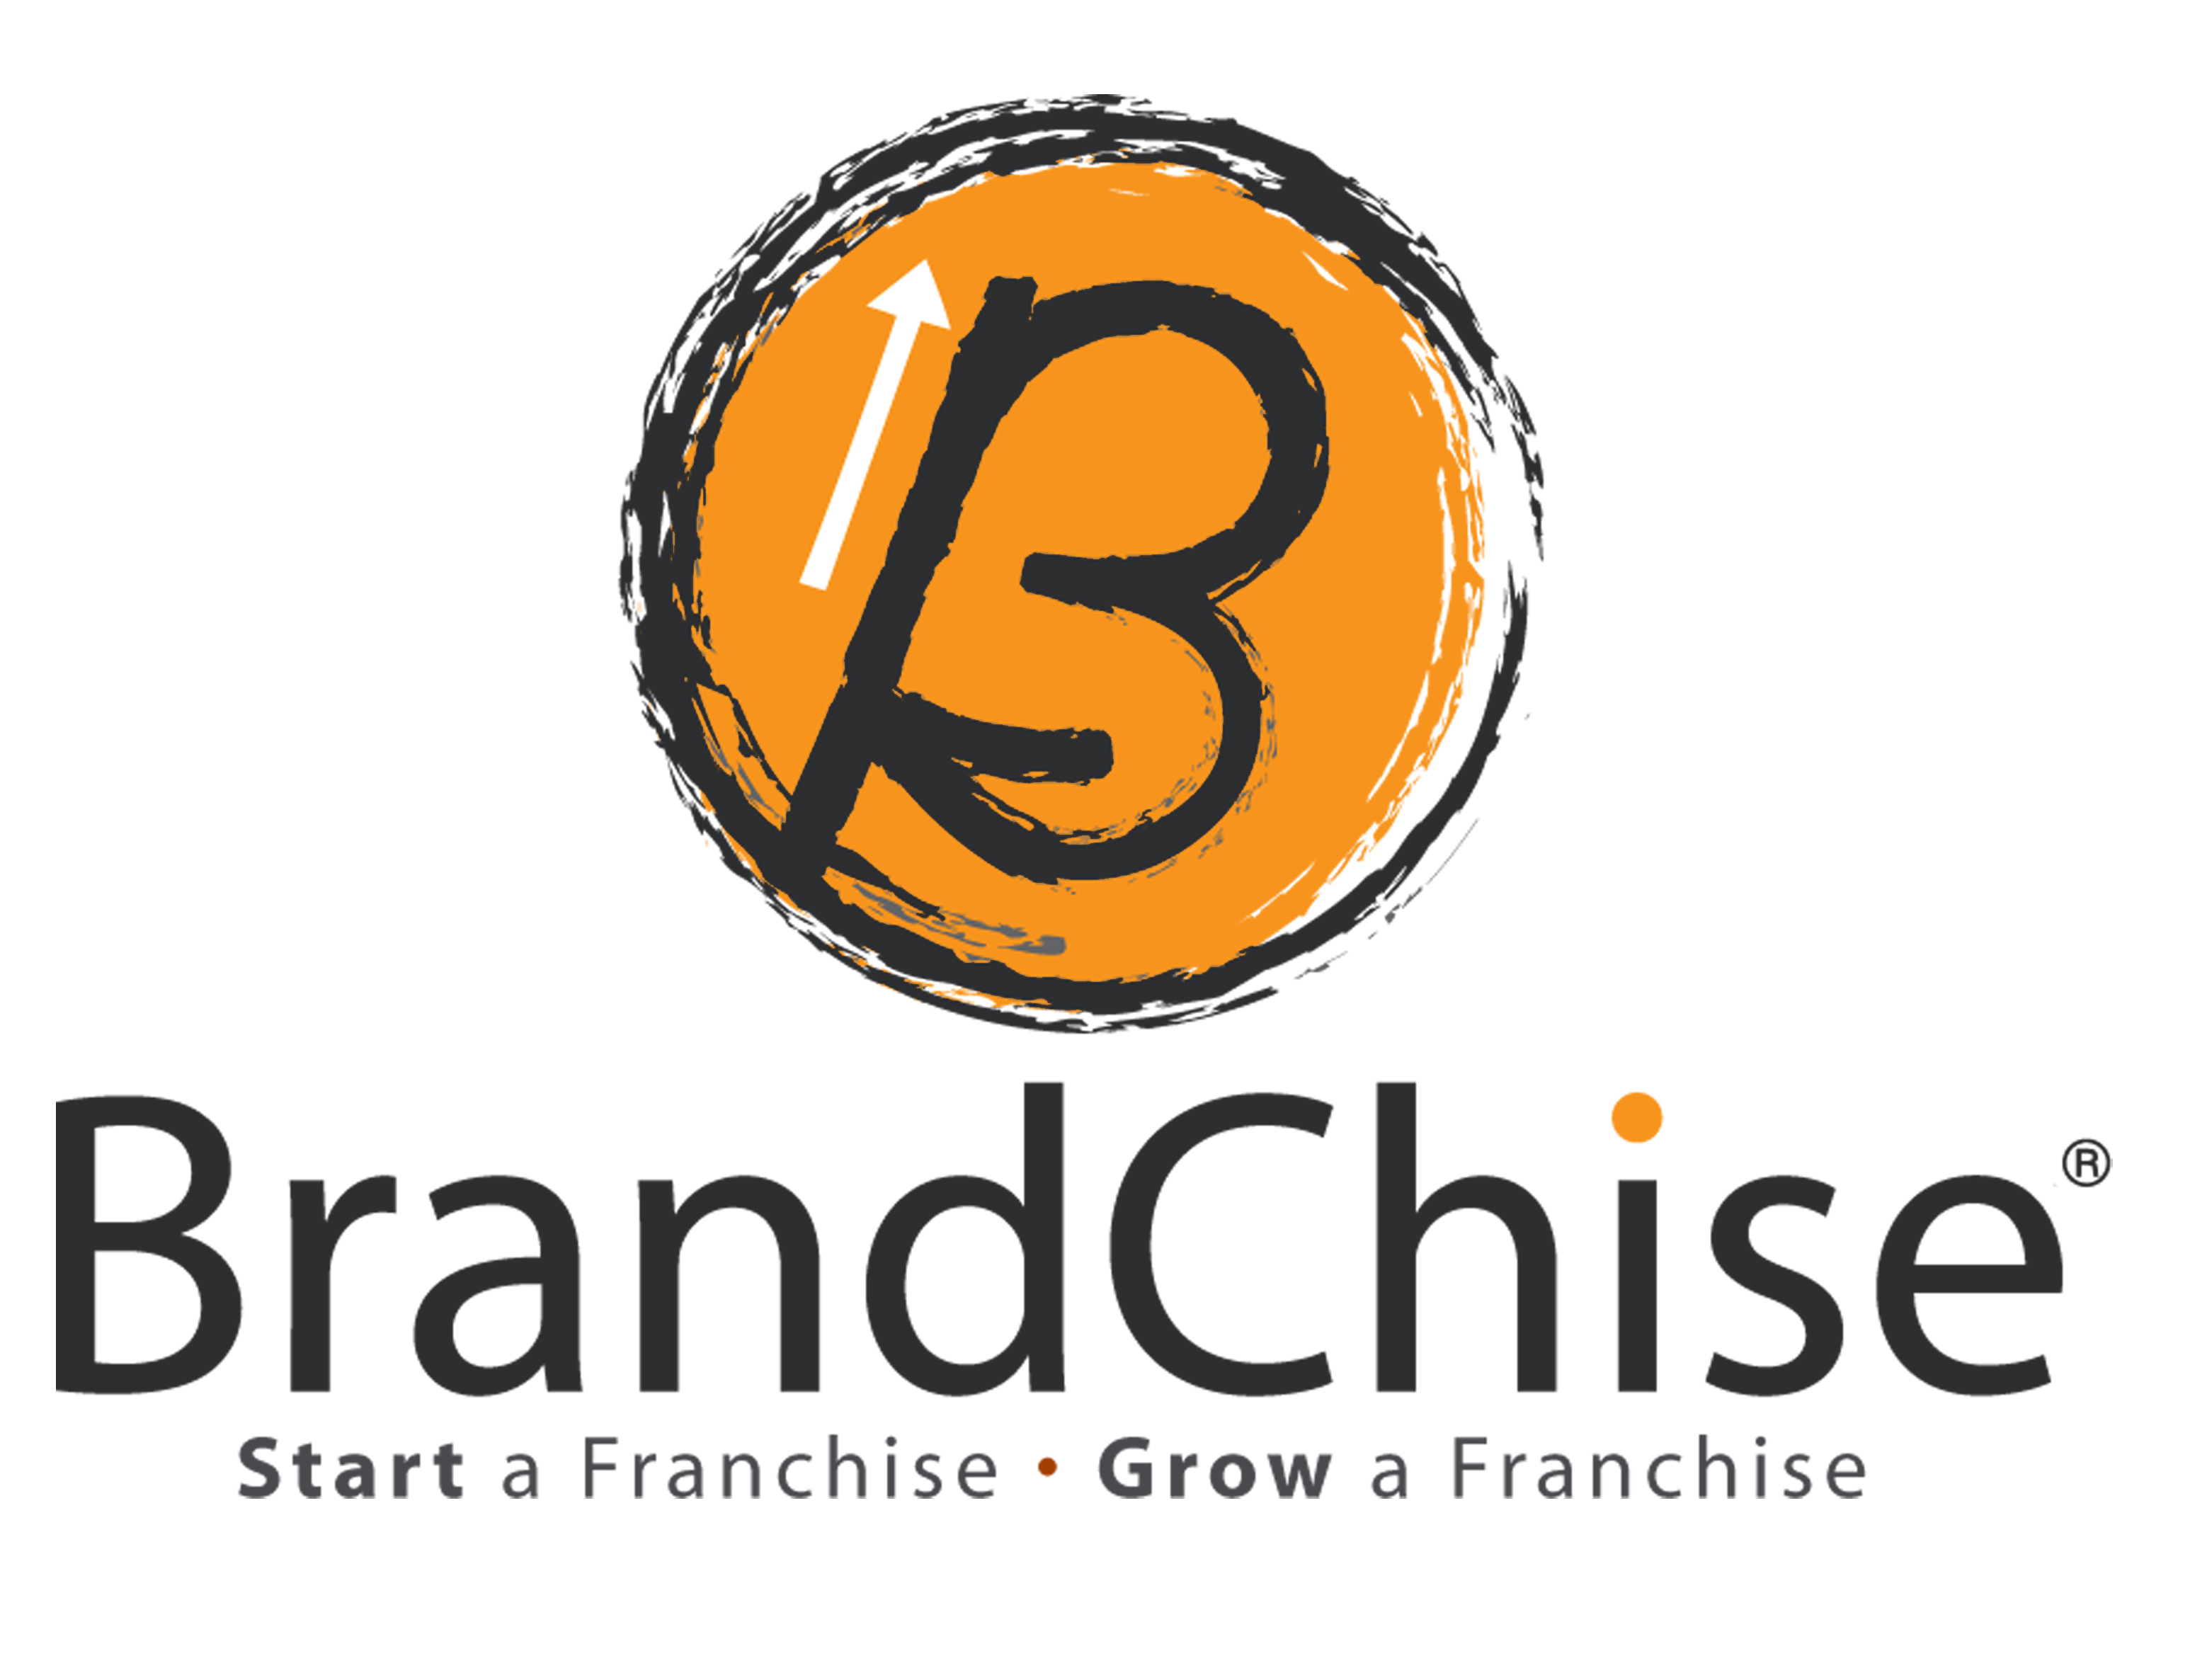 Franchise Consulting BrandChise Franchise Your Business